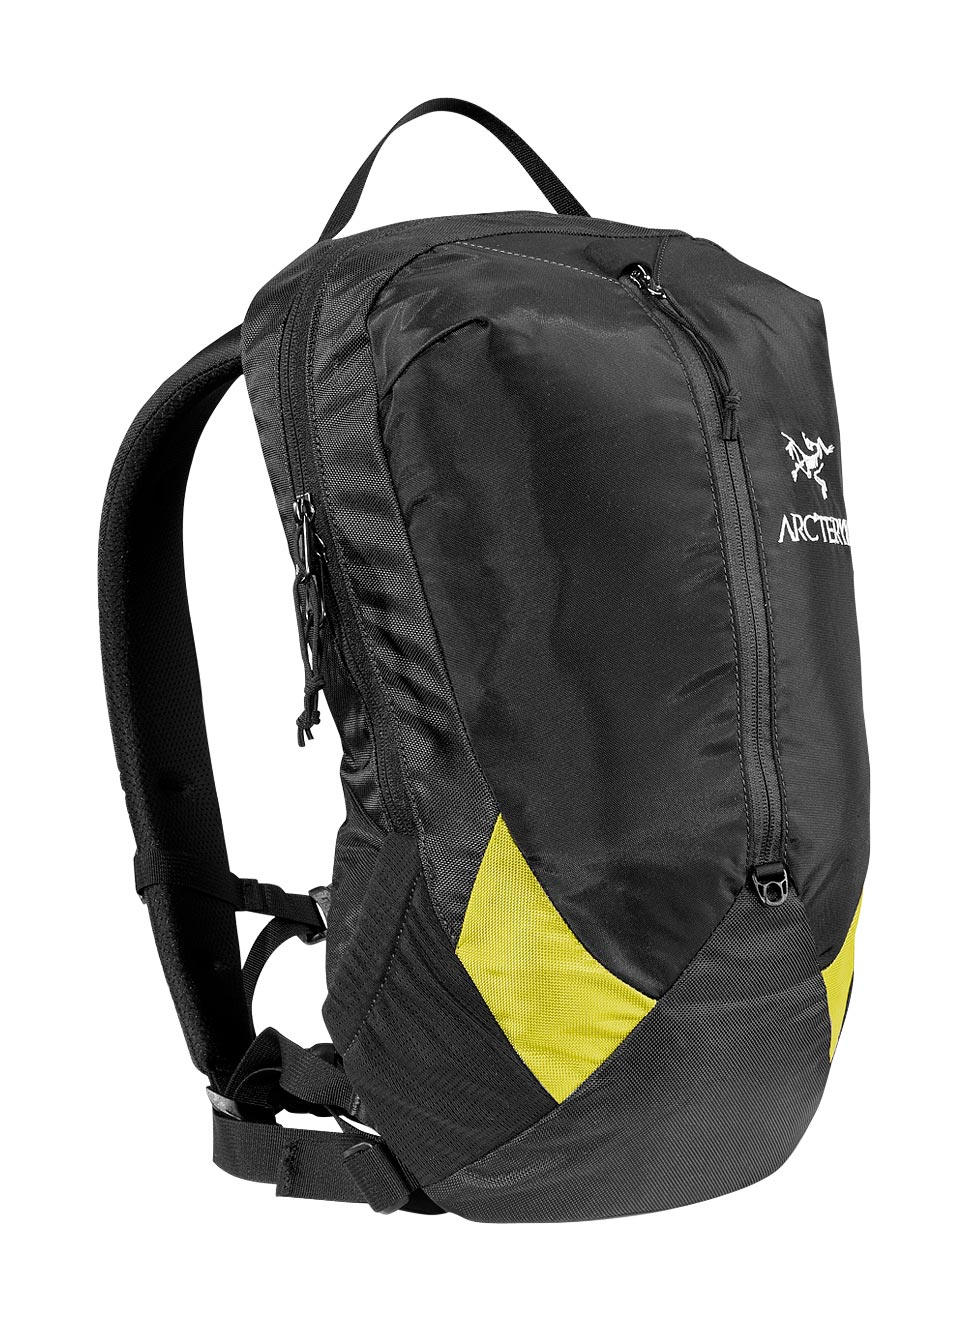 Arcteryx Black Fly 13